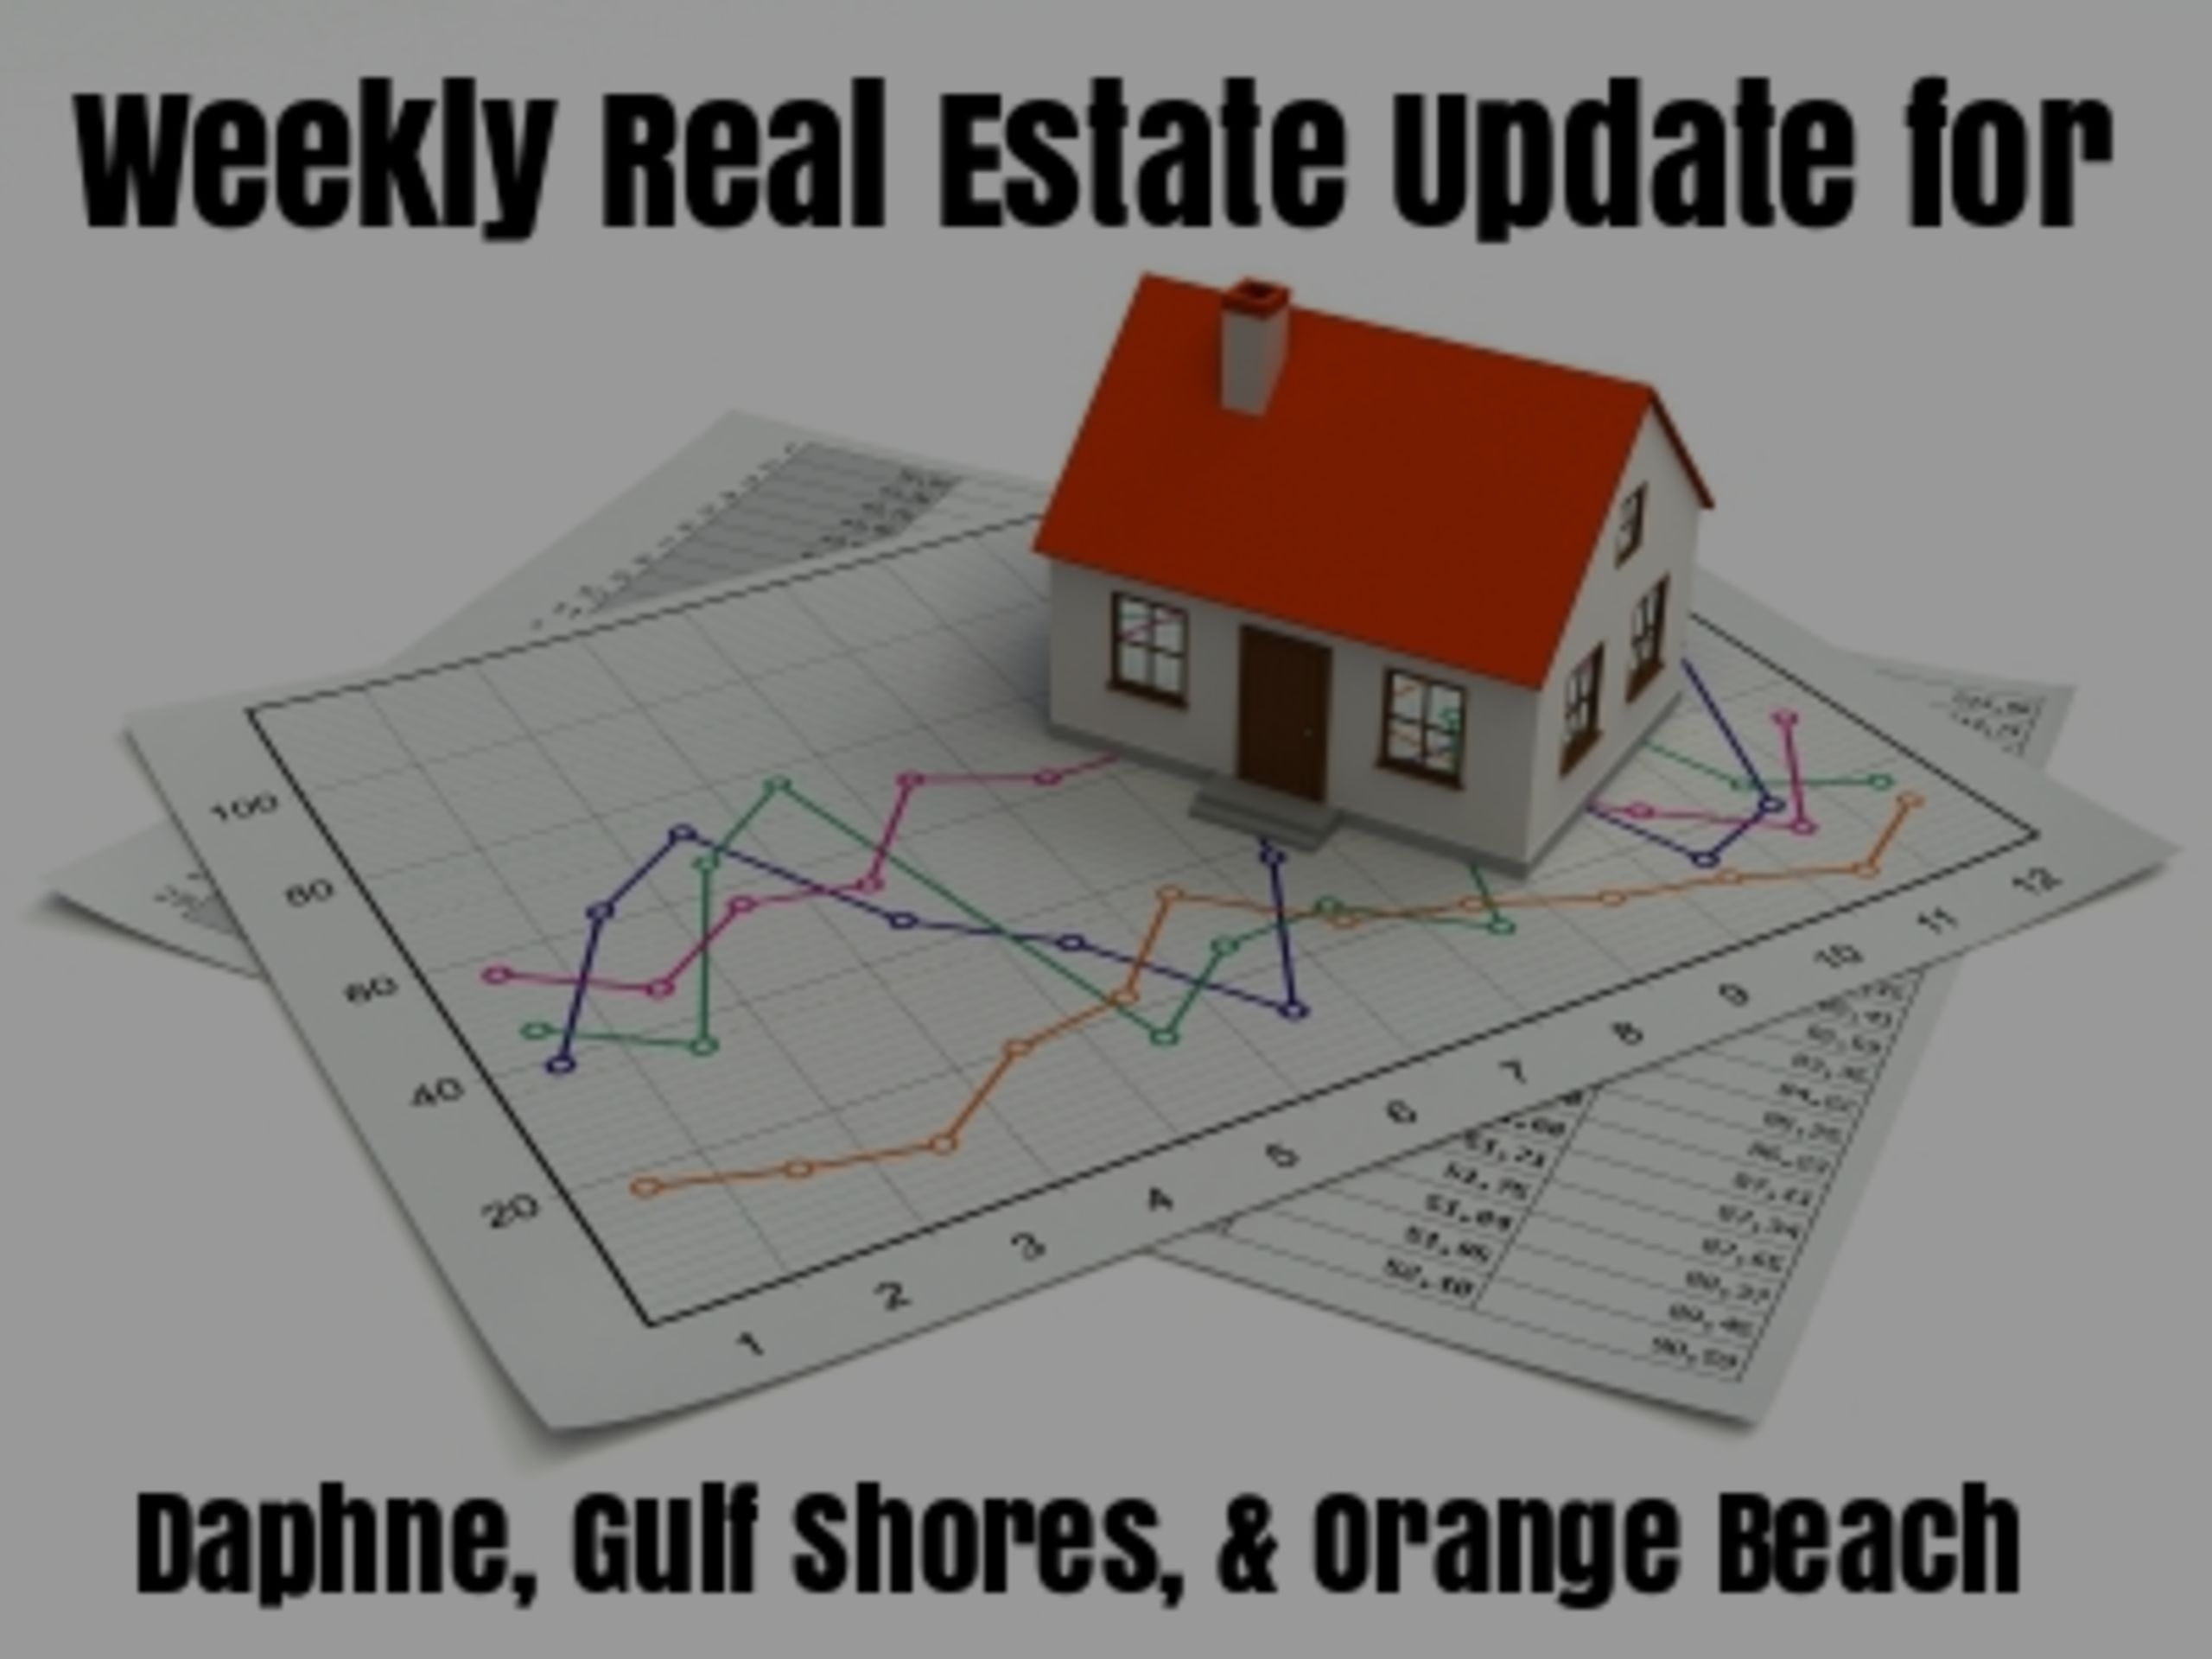 Weekly Real Estate Update – Daphne, Gulf Shores, and Orange Beach – 10/16/17